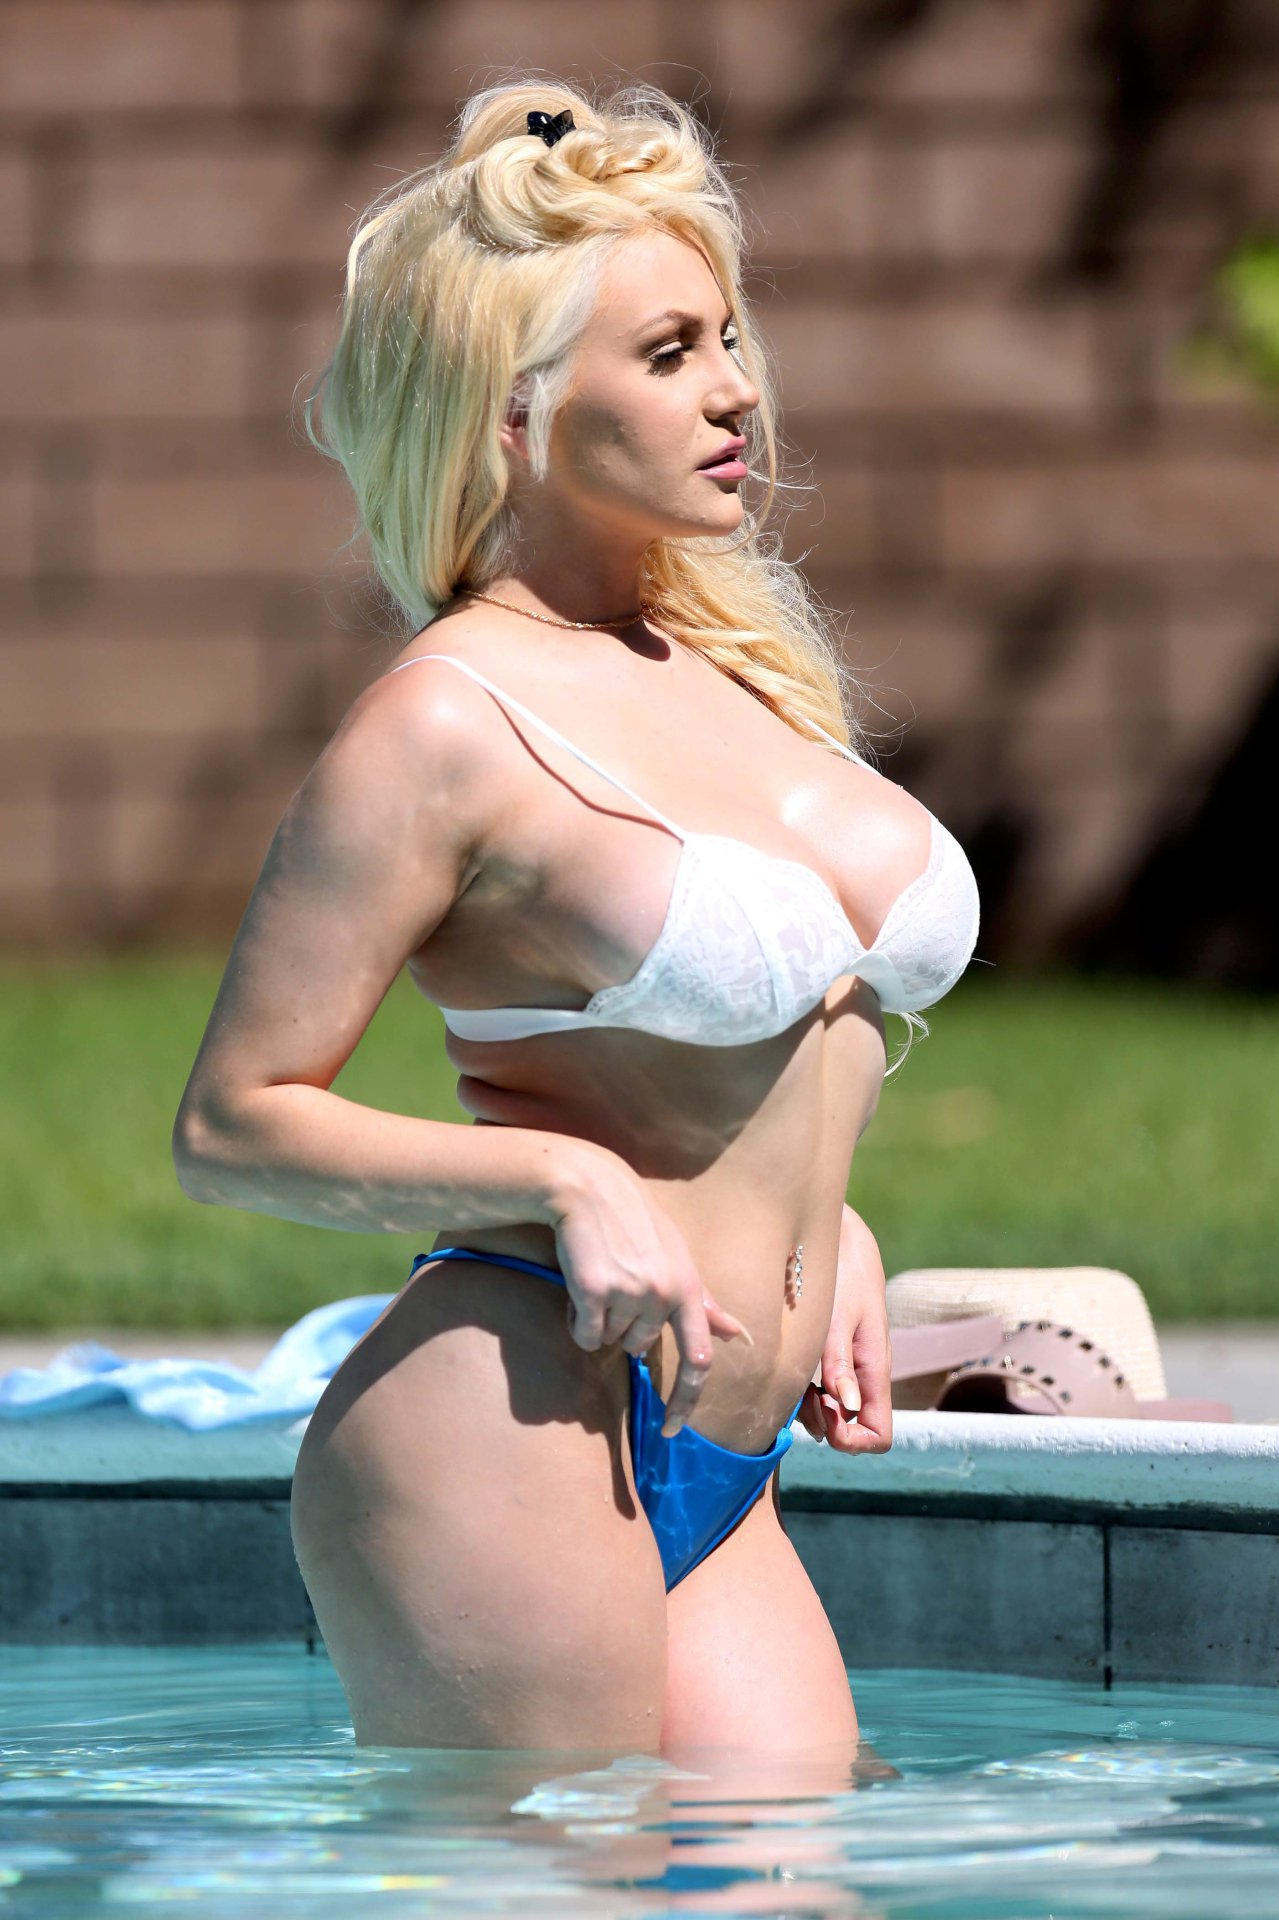 Boobs Courtney Stodden naked (99 photo), Tits, Bikini, Boobs, butt 2015